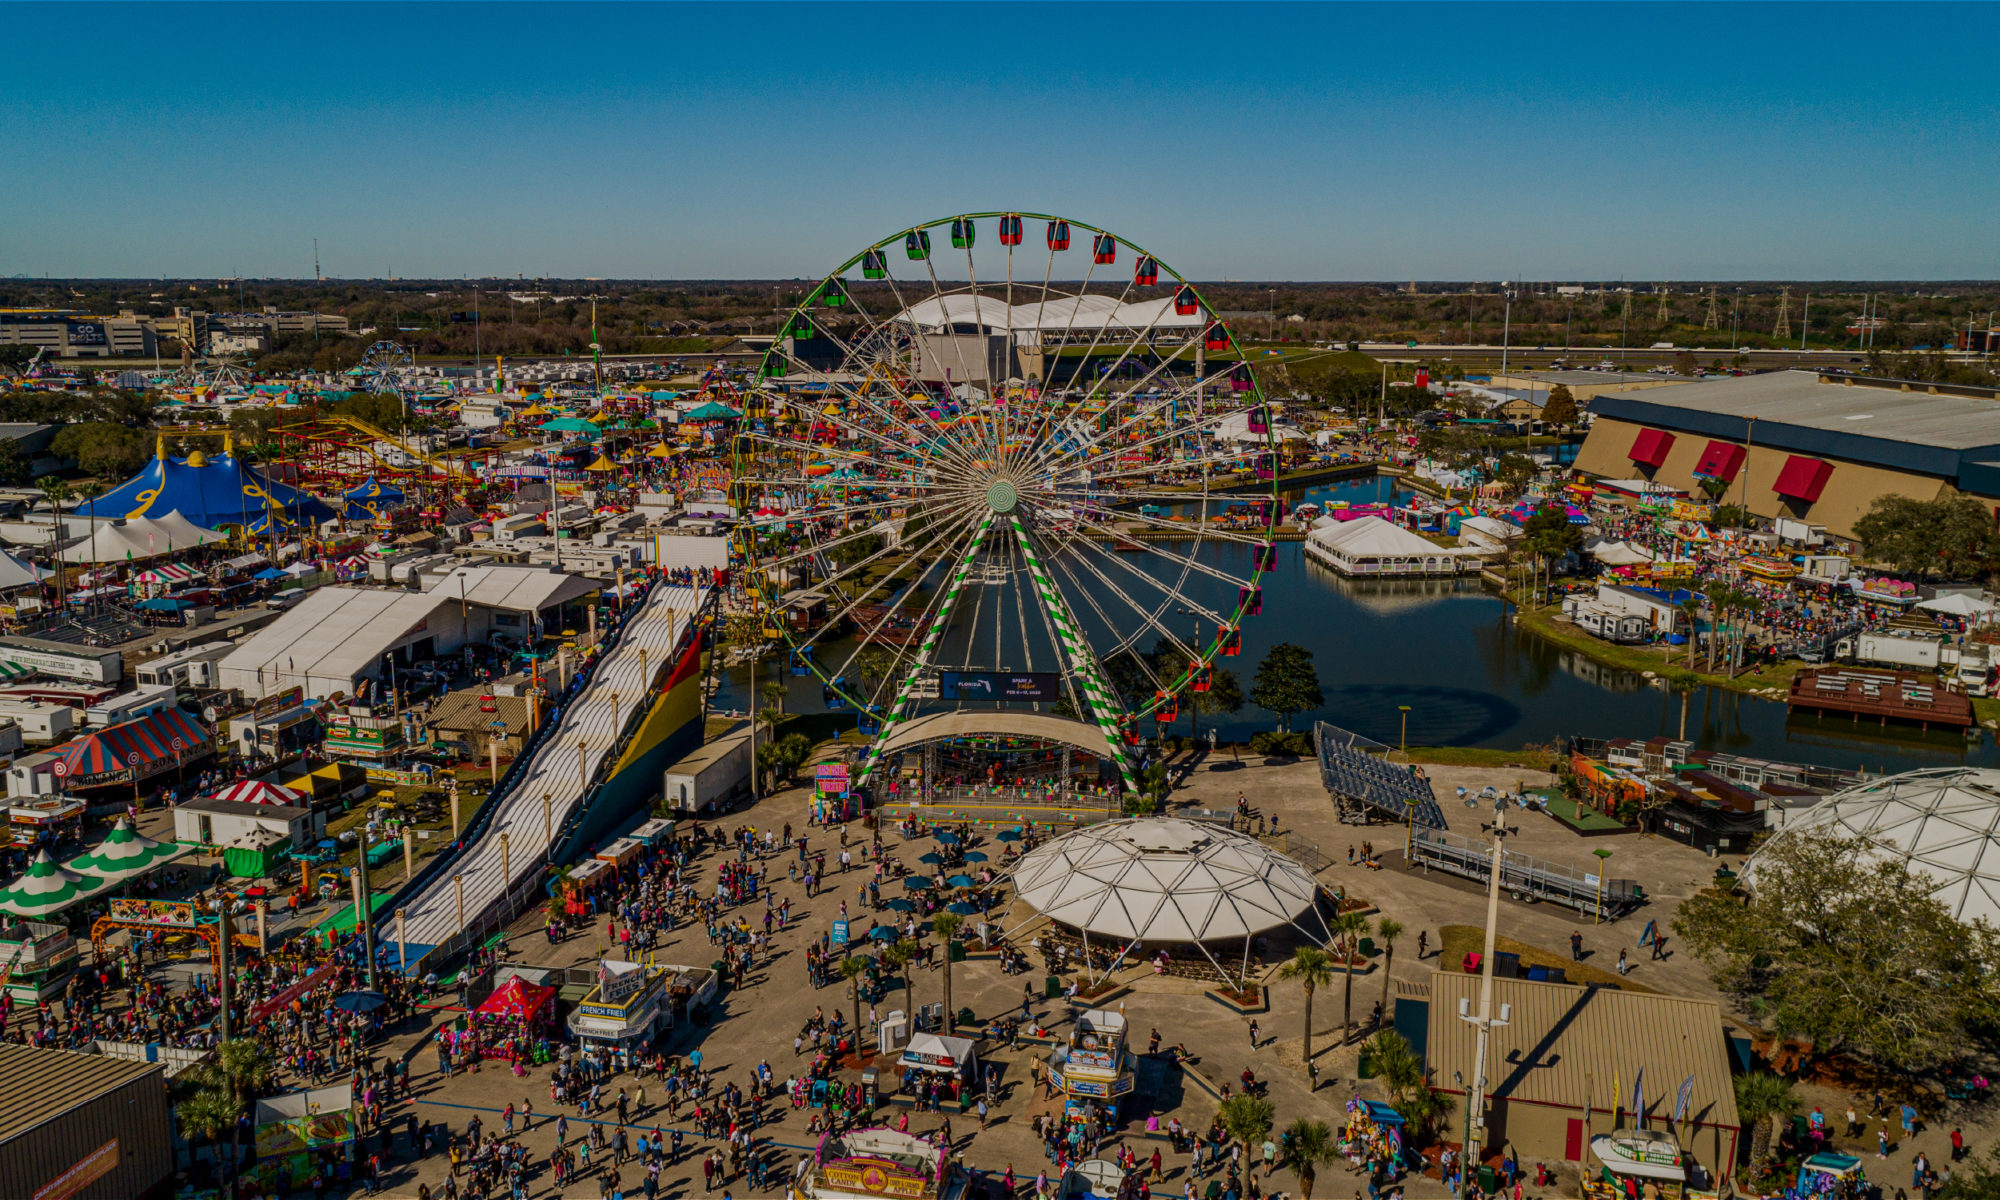 Florida State Fairgrounds: Find Your Fun In The Sun! Pertaining To Florida State Fairgrounds Events